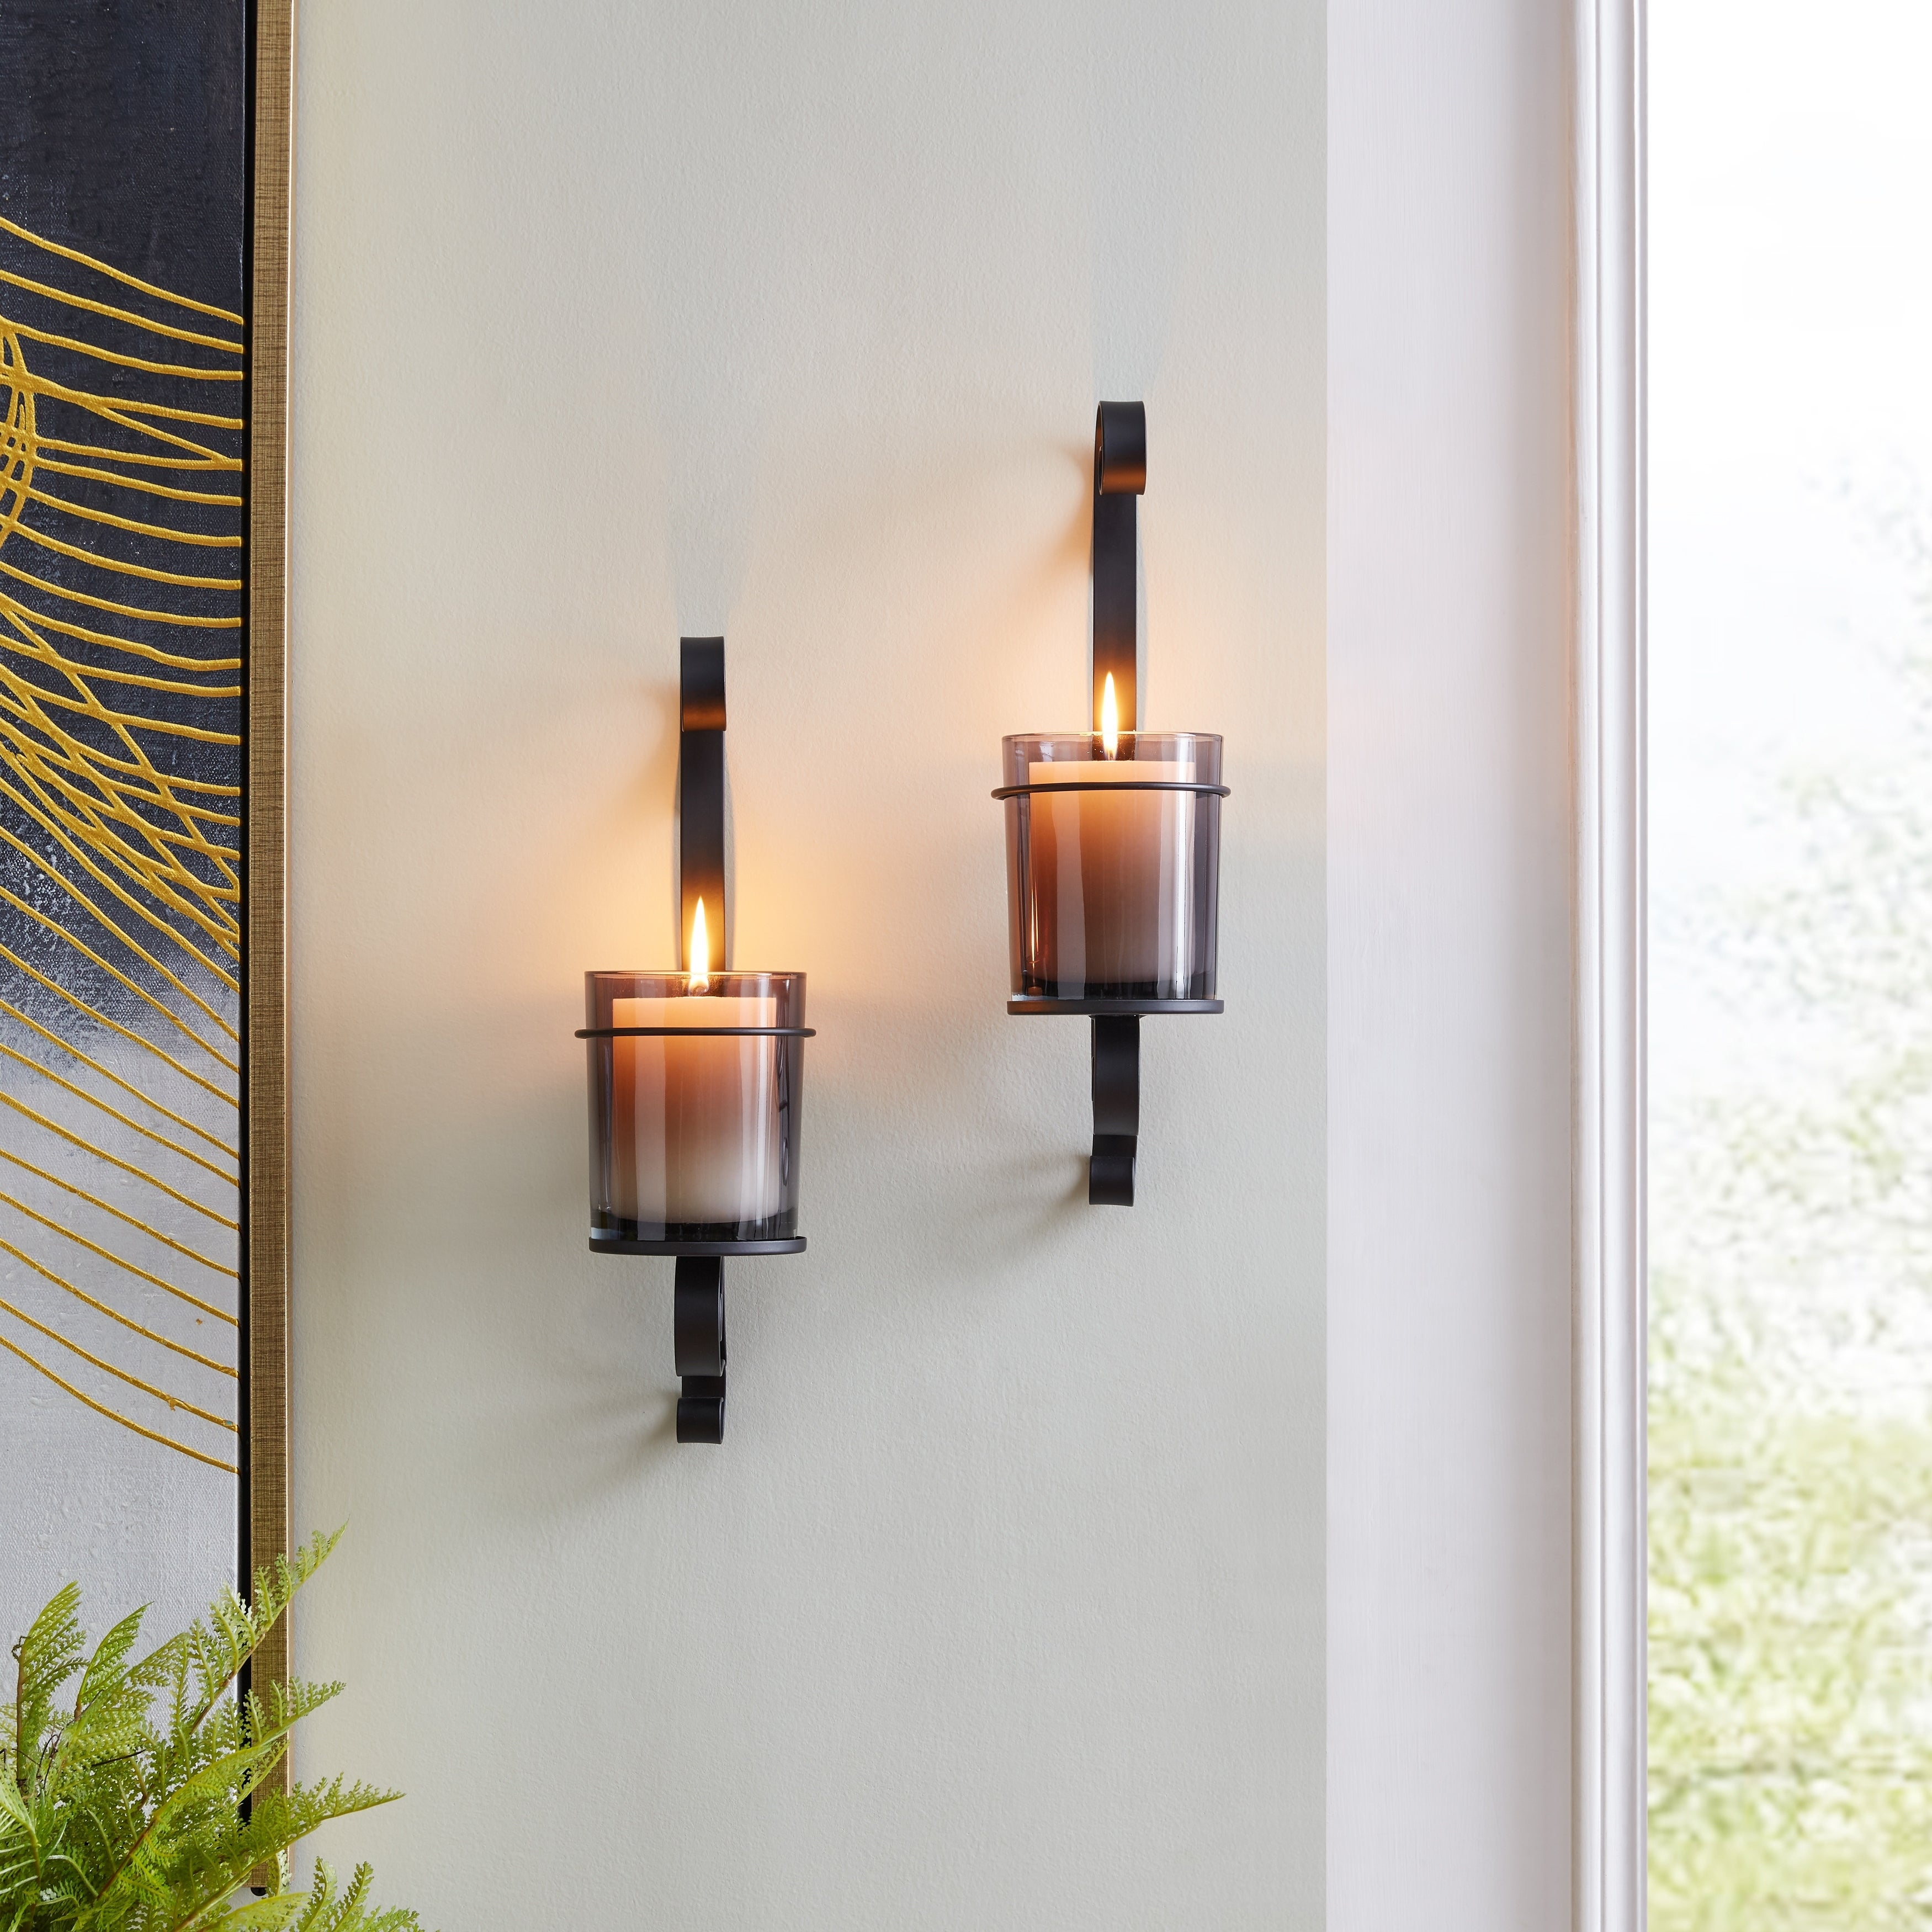 Shop Black Friday Deals On Danya B Vintage Black Wall Sconce Candle Holder Set 2 With Smoke Glass Hurricanes Overstock 31059628